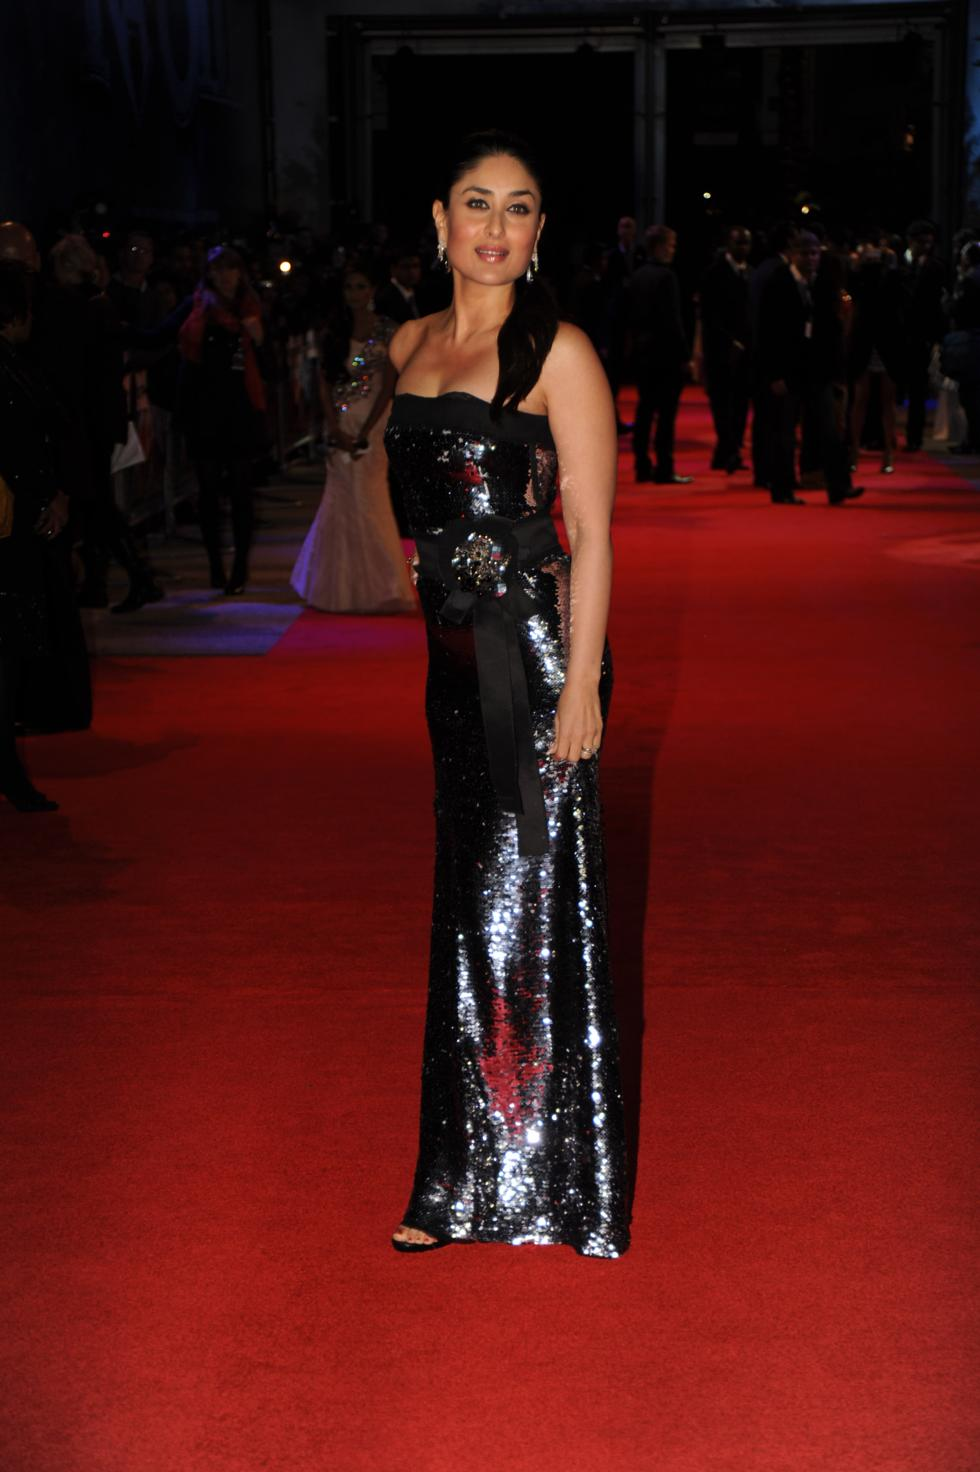 bollywood: kareena kapoor in pictures